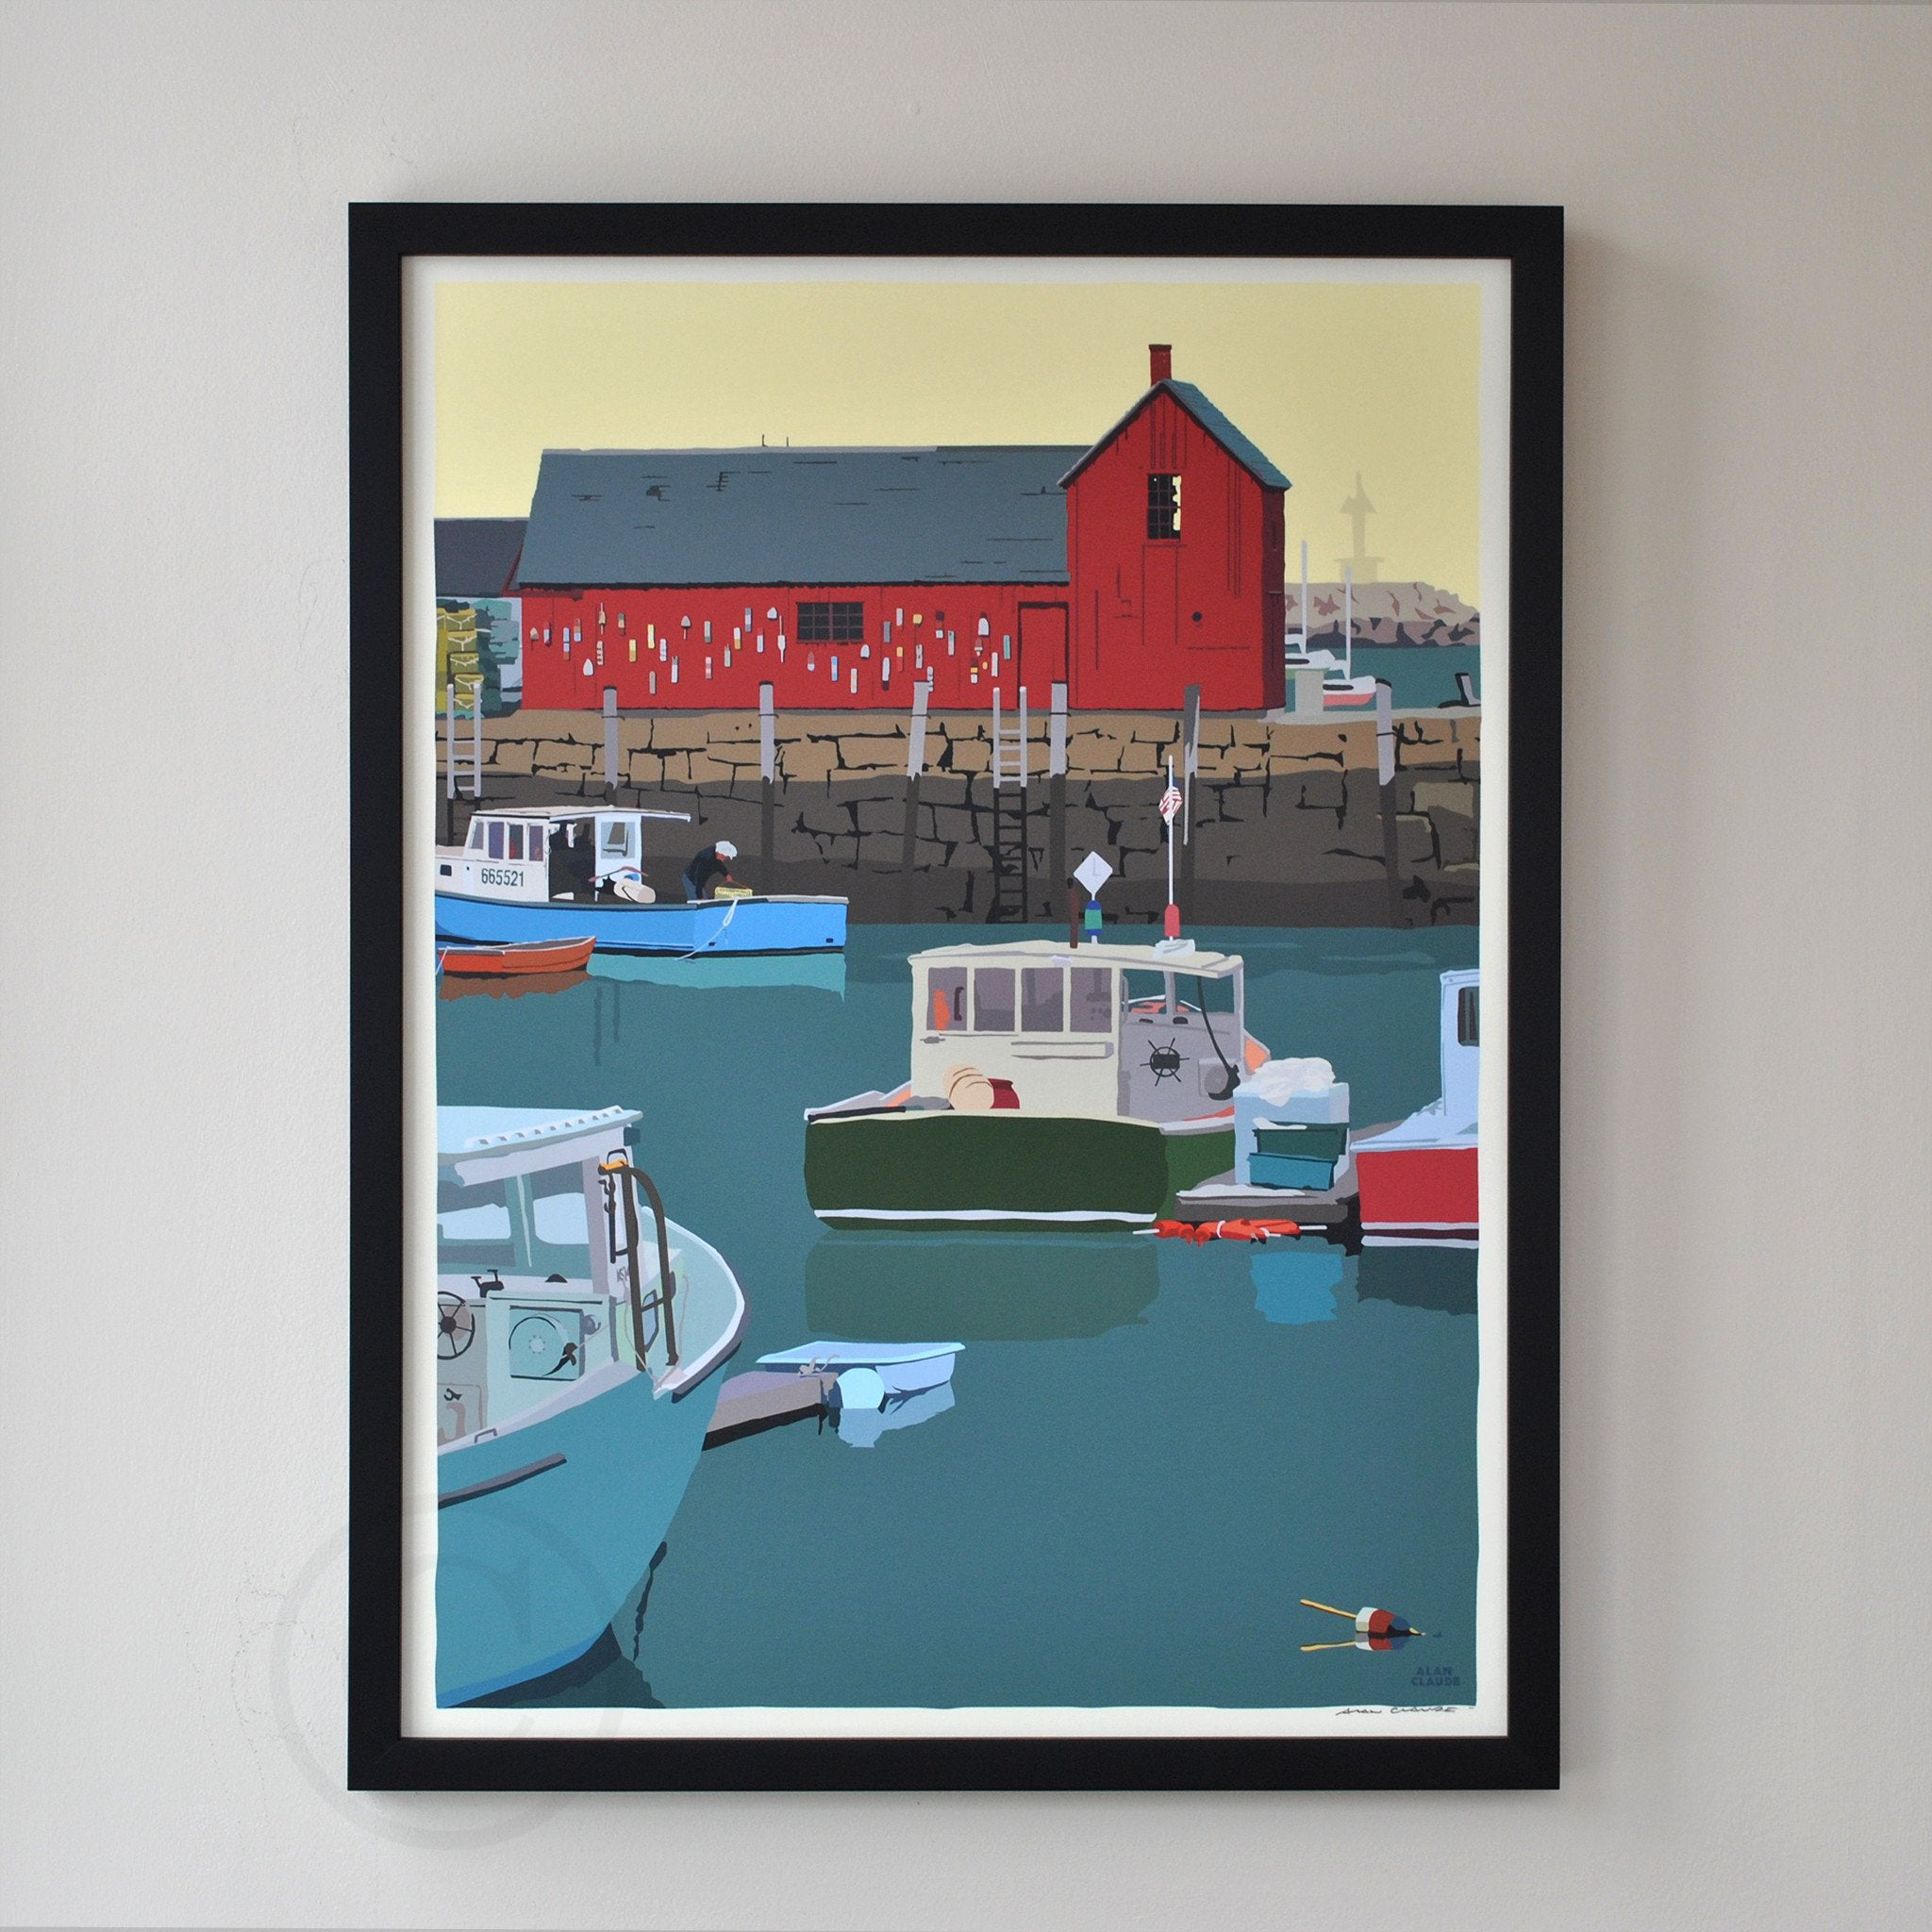 "Motif #1 - version A - Art Print 18"" x 24"" Framed Wall Poster - Massachusetts"